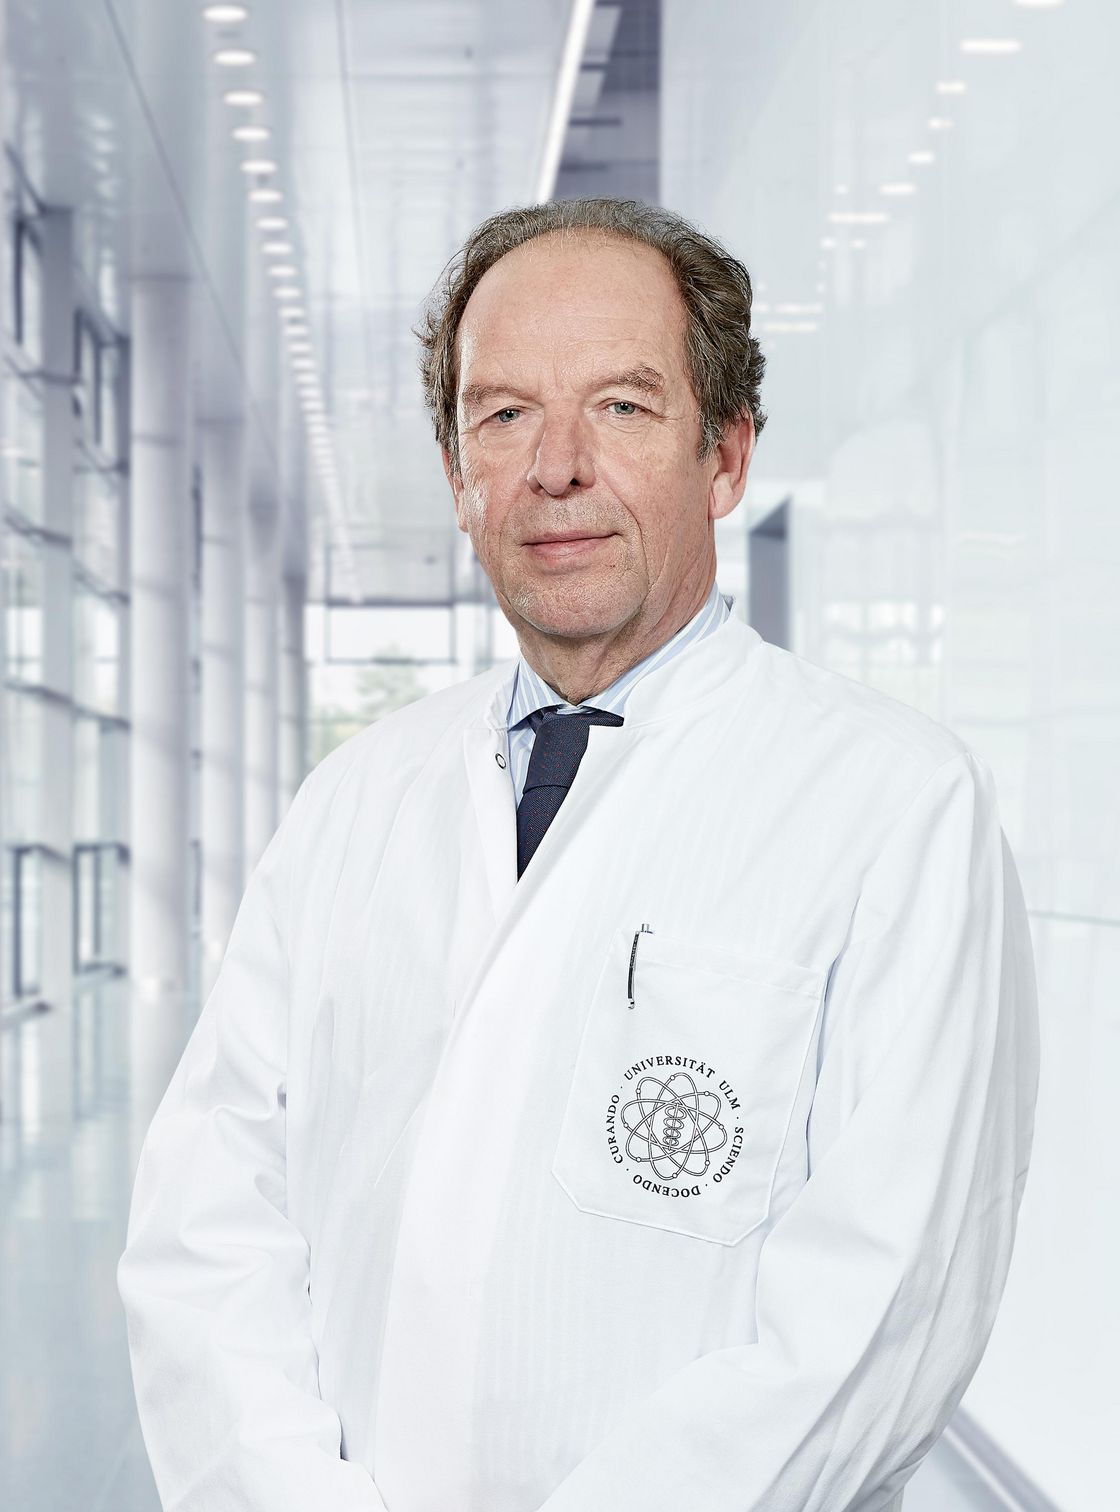 Photo of Prof. Lüder-Hinrich Meyer standing in a corridor of the hospital